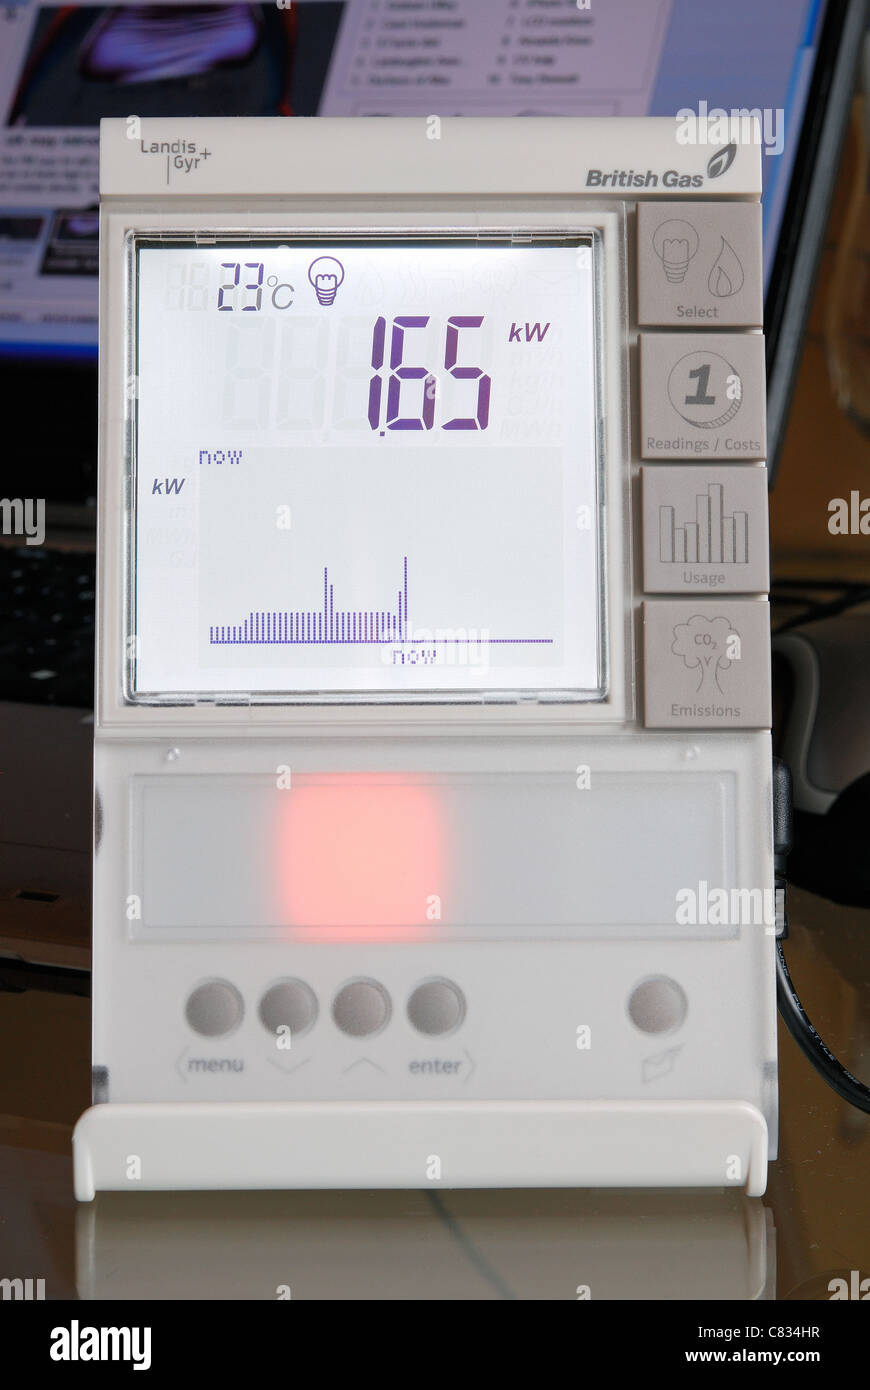 A domestic British Gas Smart Meter in 'electricity' mode, with amber light indicating average energy consumption. - Stock Image